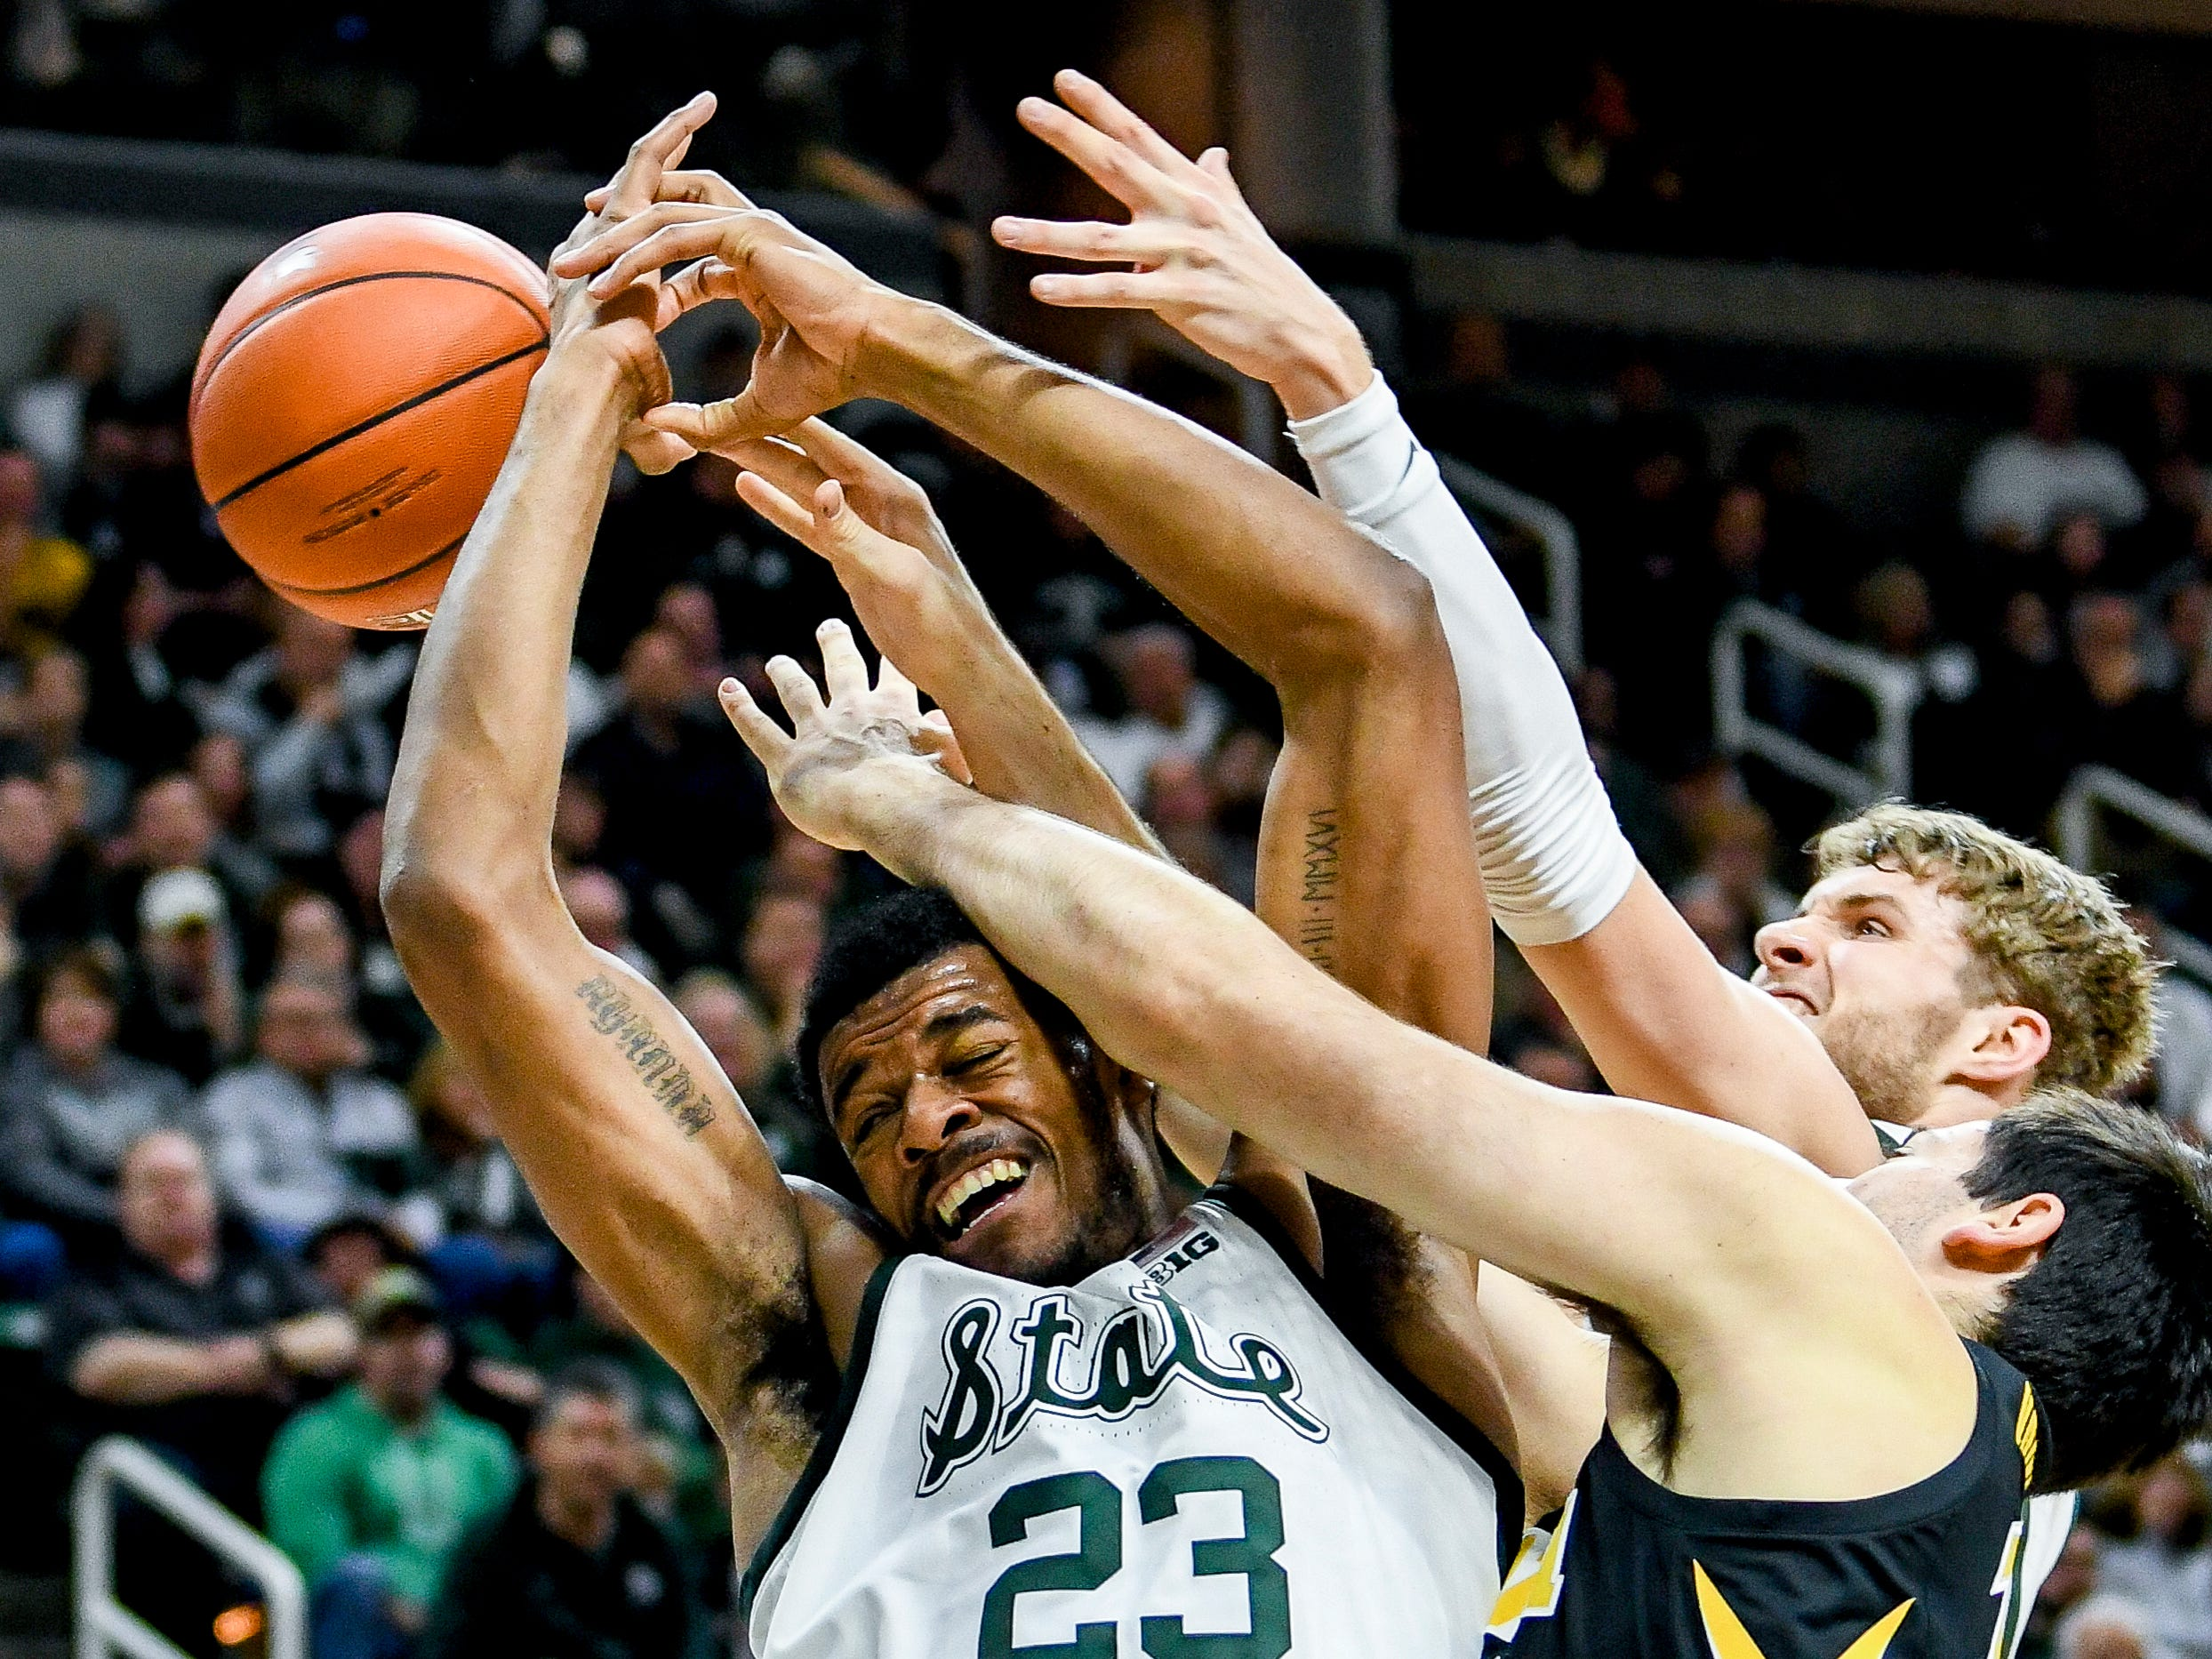 Michigan State's Xavier Tillman, left, battles Iowa's Ryan Kriener for a rebound during the first half on Monday, Dec. 3, 2018, at the Breslin Center in East Lansing.